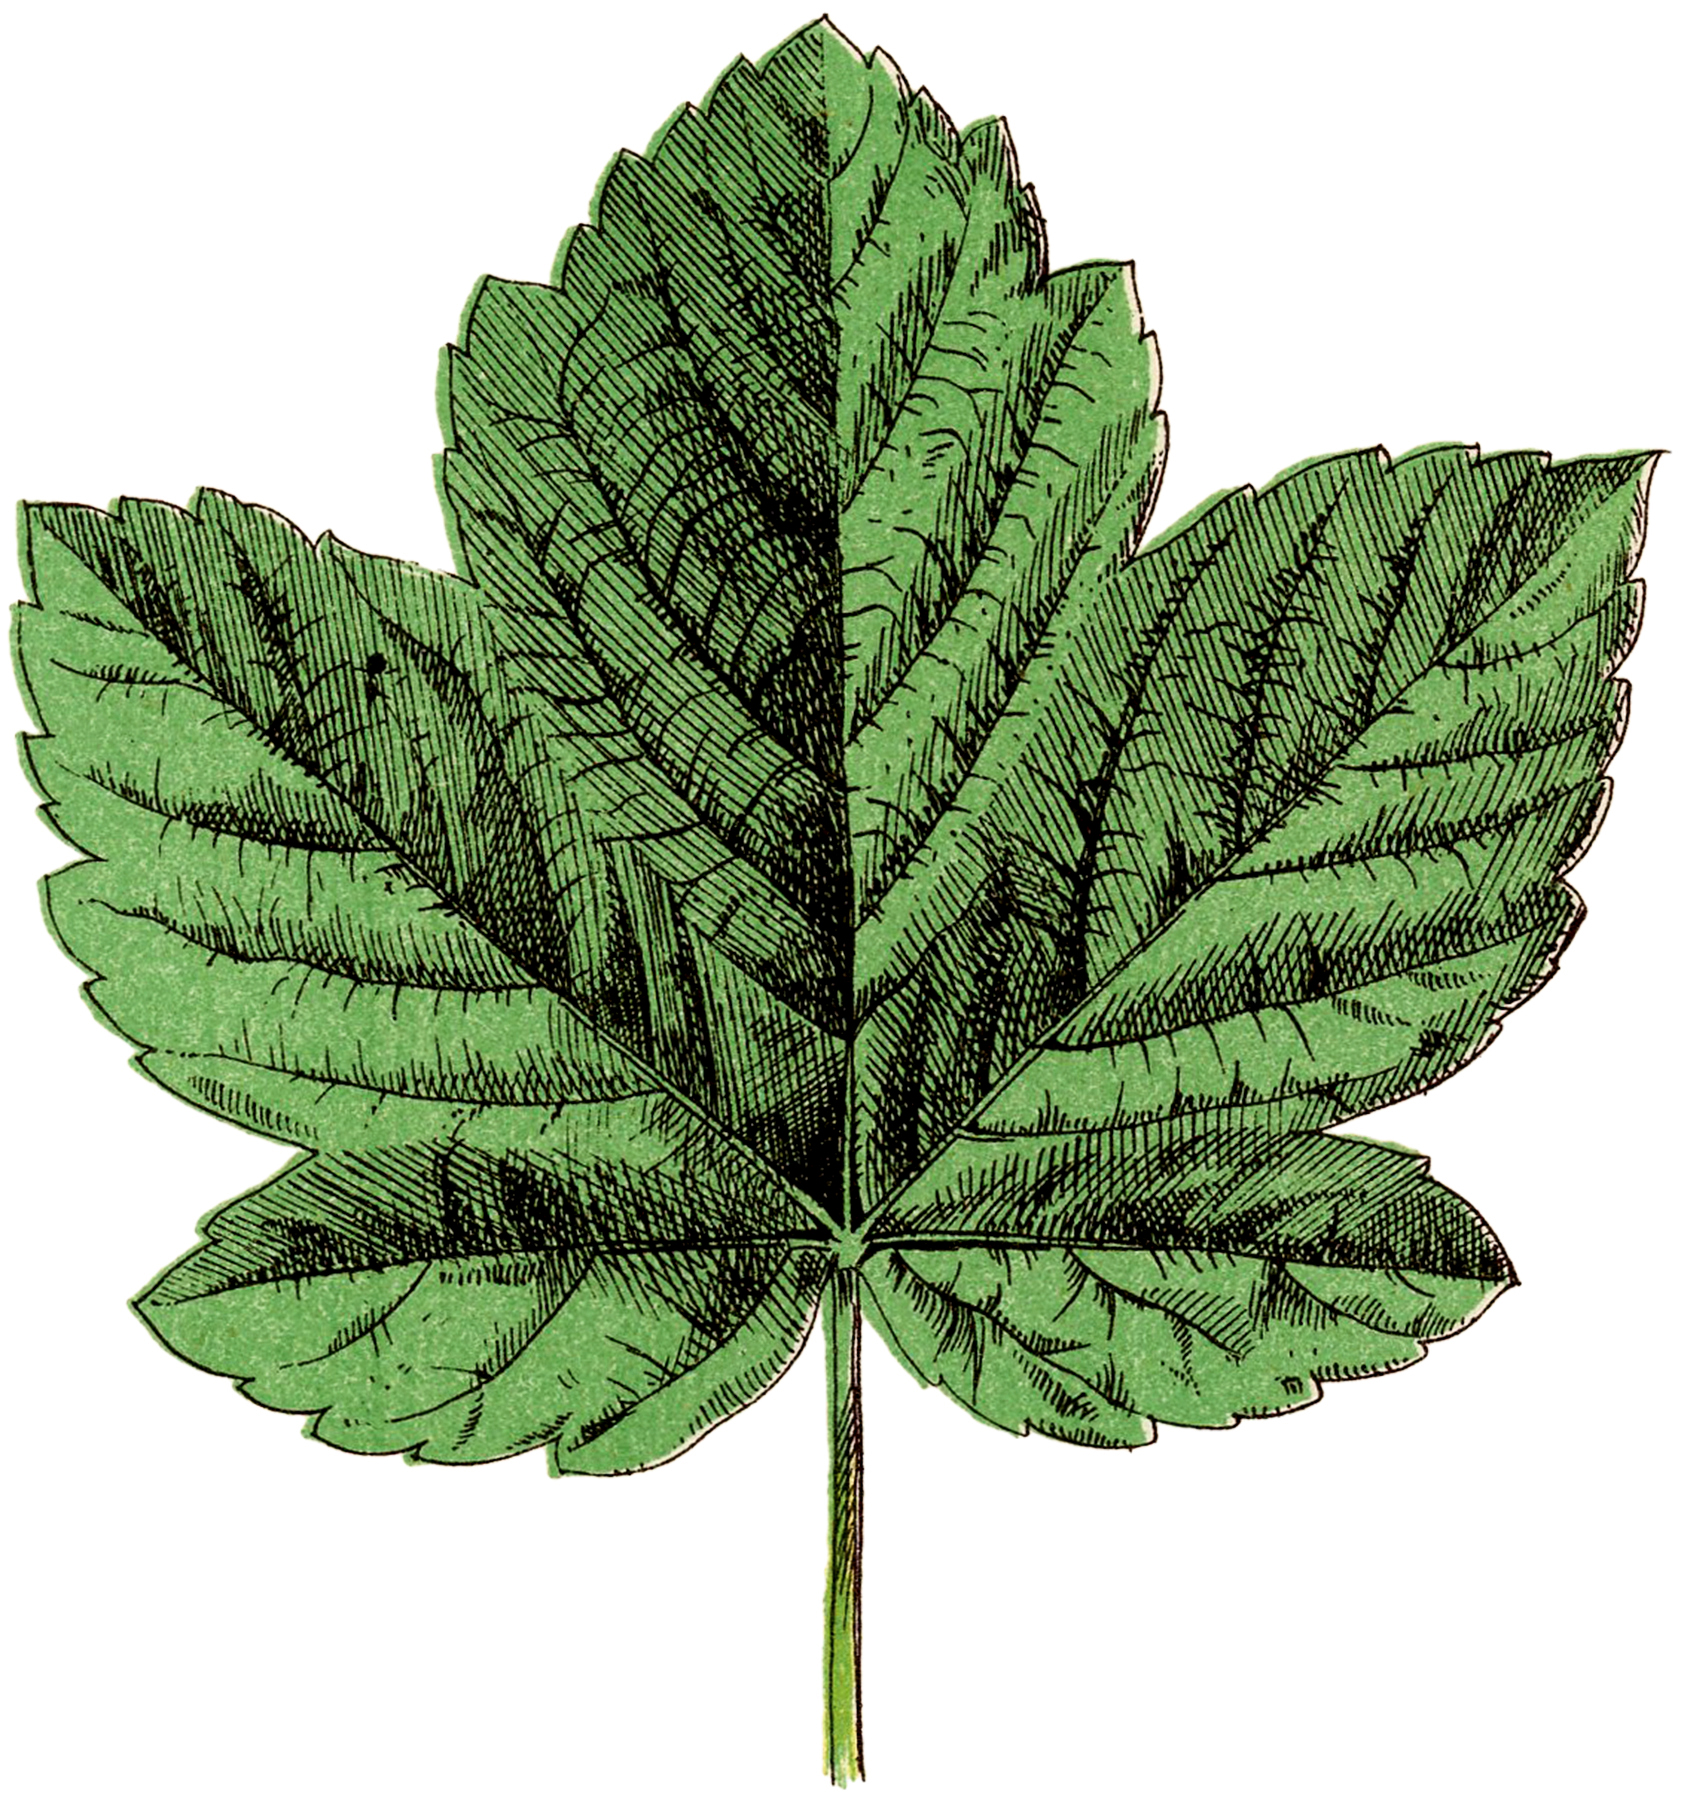 Sycamore Green Leaf Image